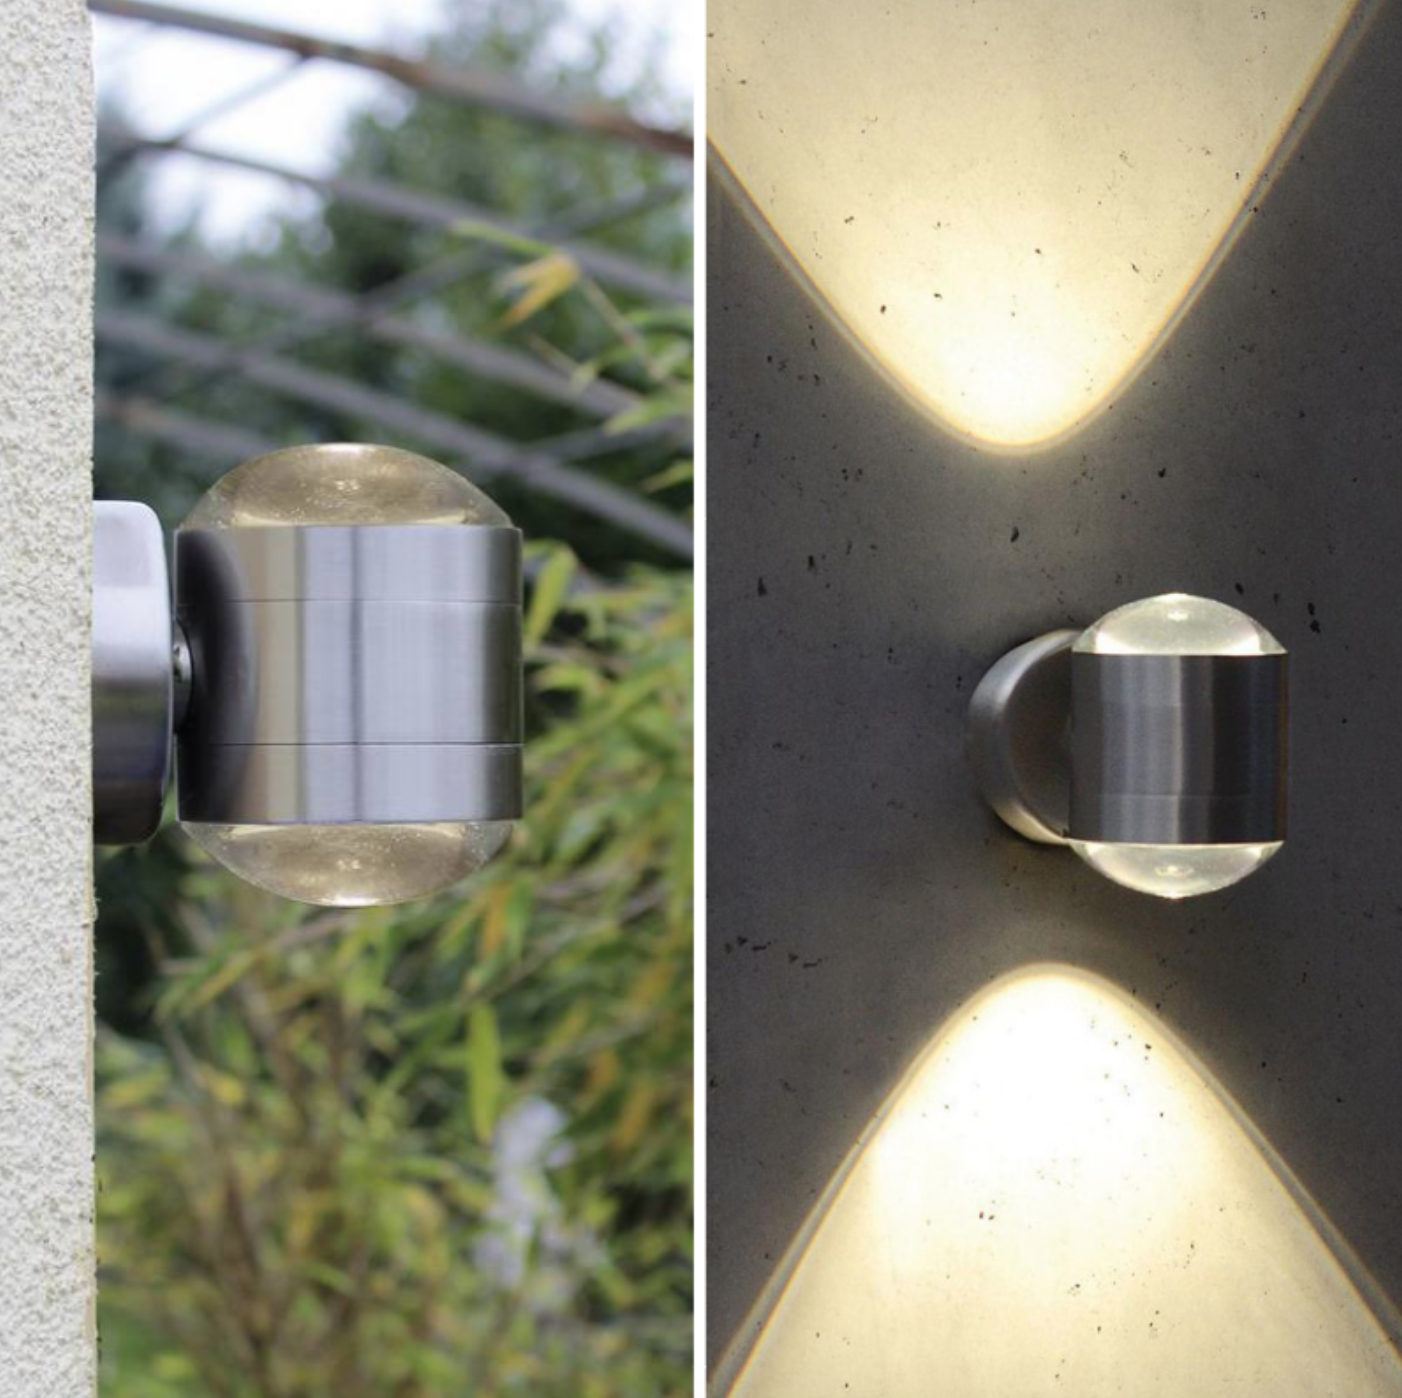 Outdoor Lampen The Lutec Lampen Crystal Outdoor Wall Light Is A Sleek And